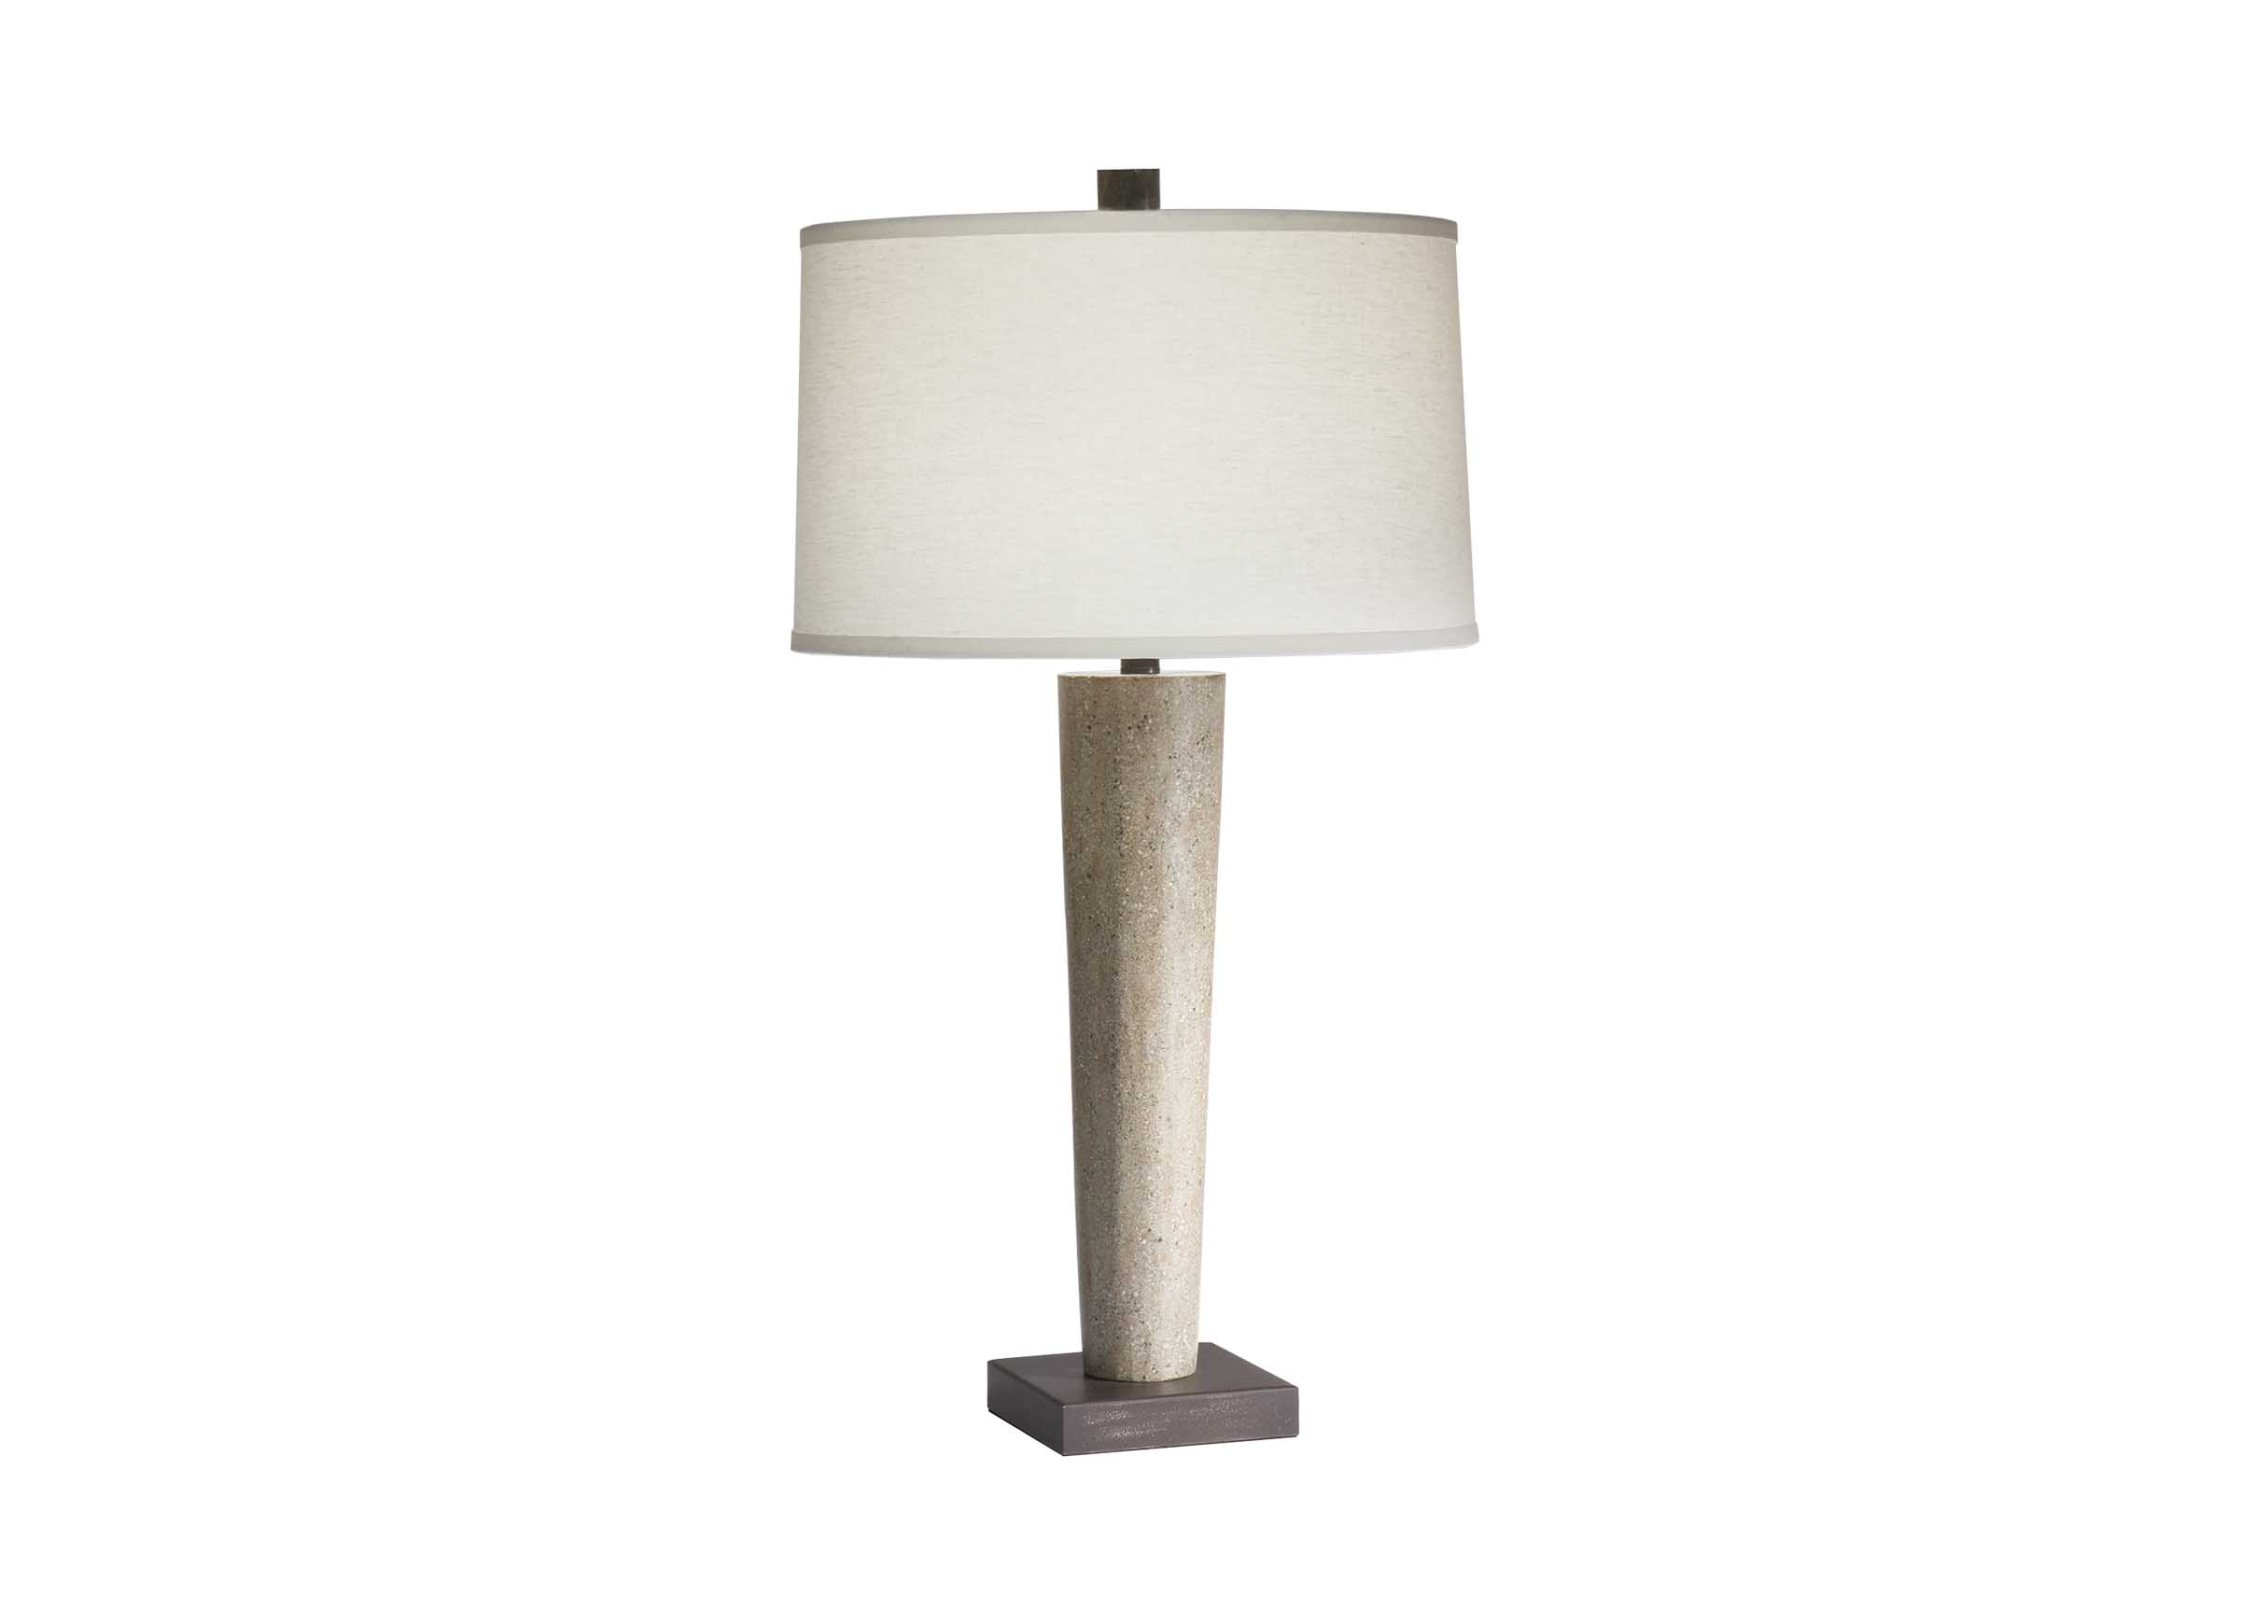 Mila concrete table lamp table lamps sitegenesis 10112 images mila concrete table lamp largegray geotapseo Choice Image